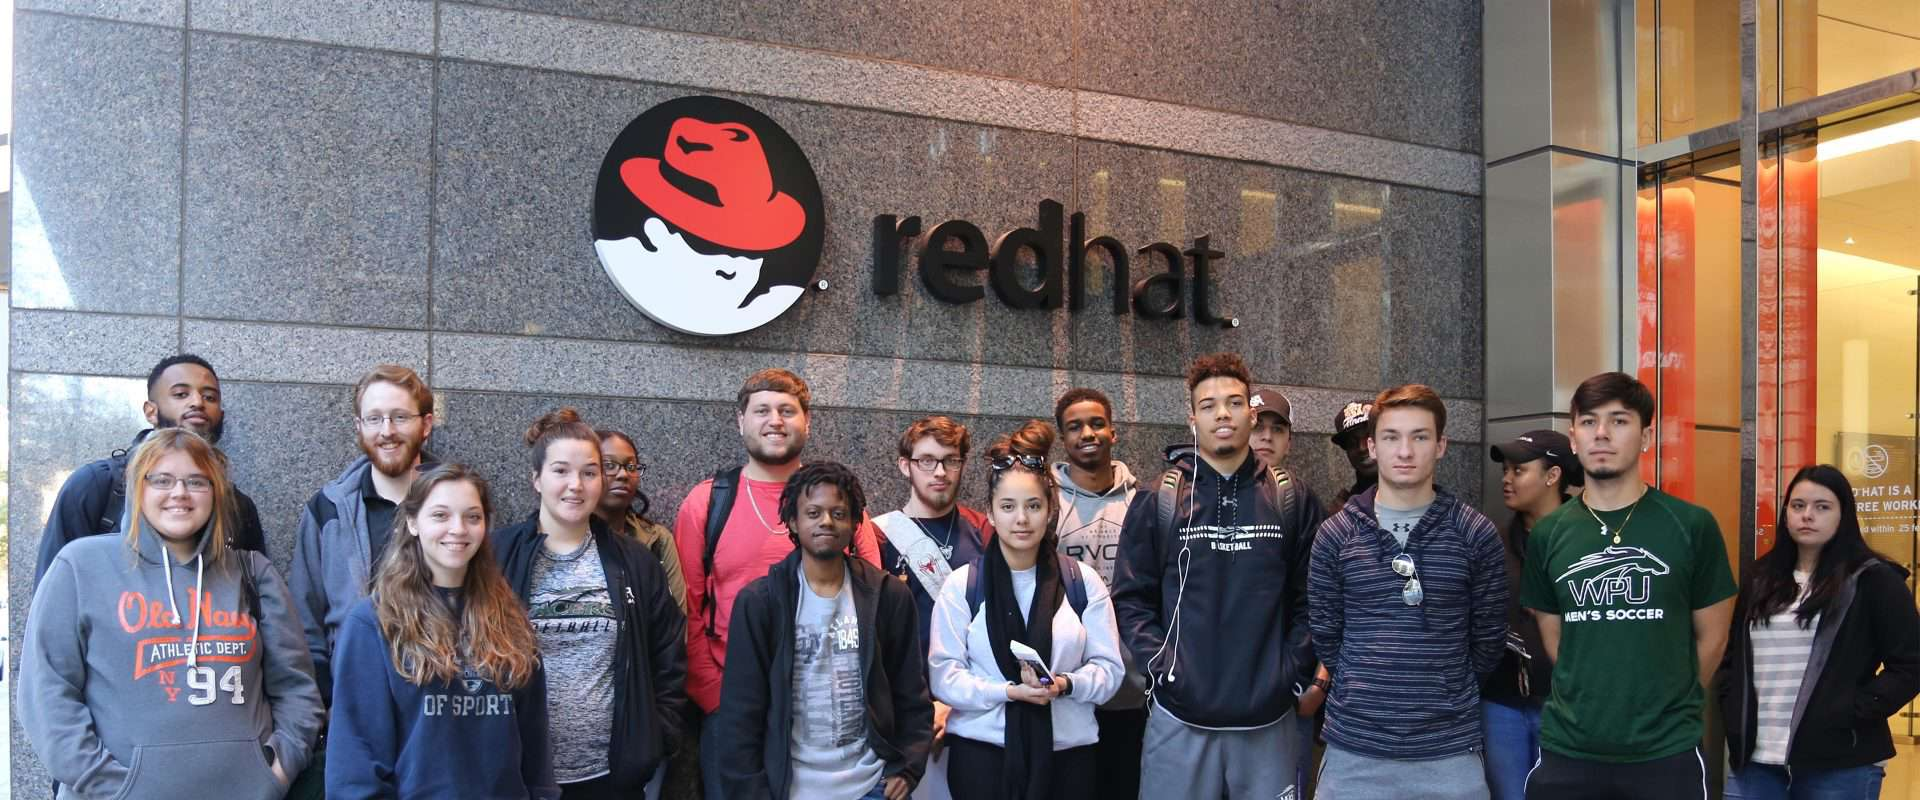 WPU Students visit nearby Red Hat.